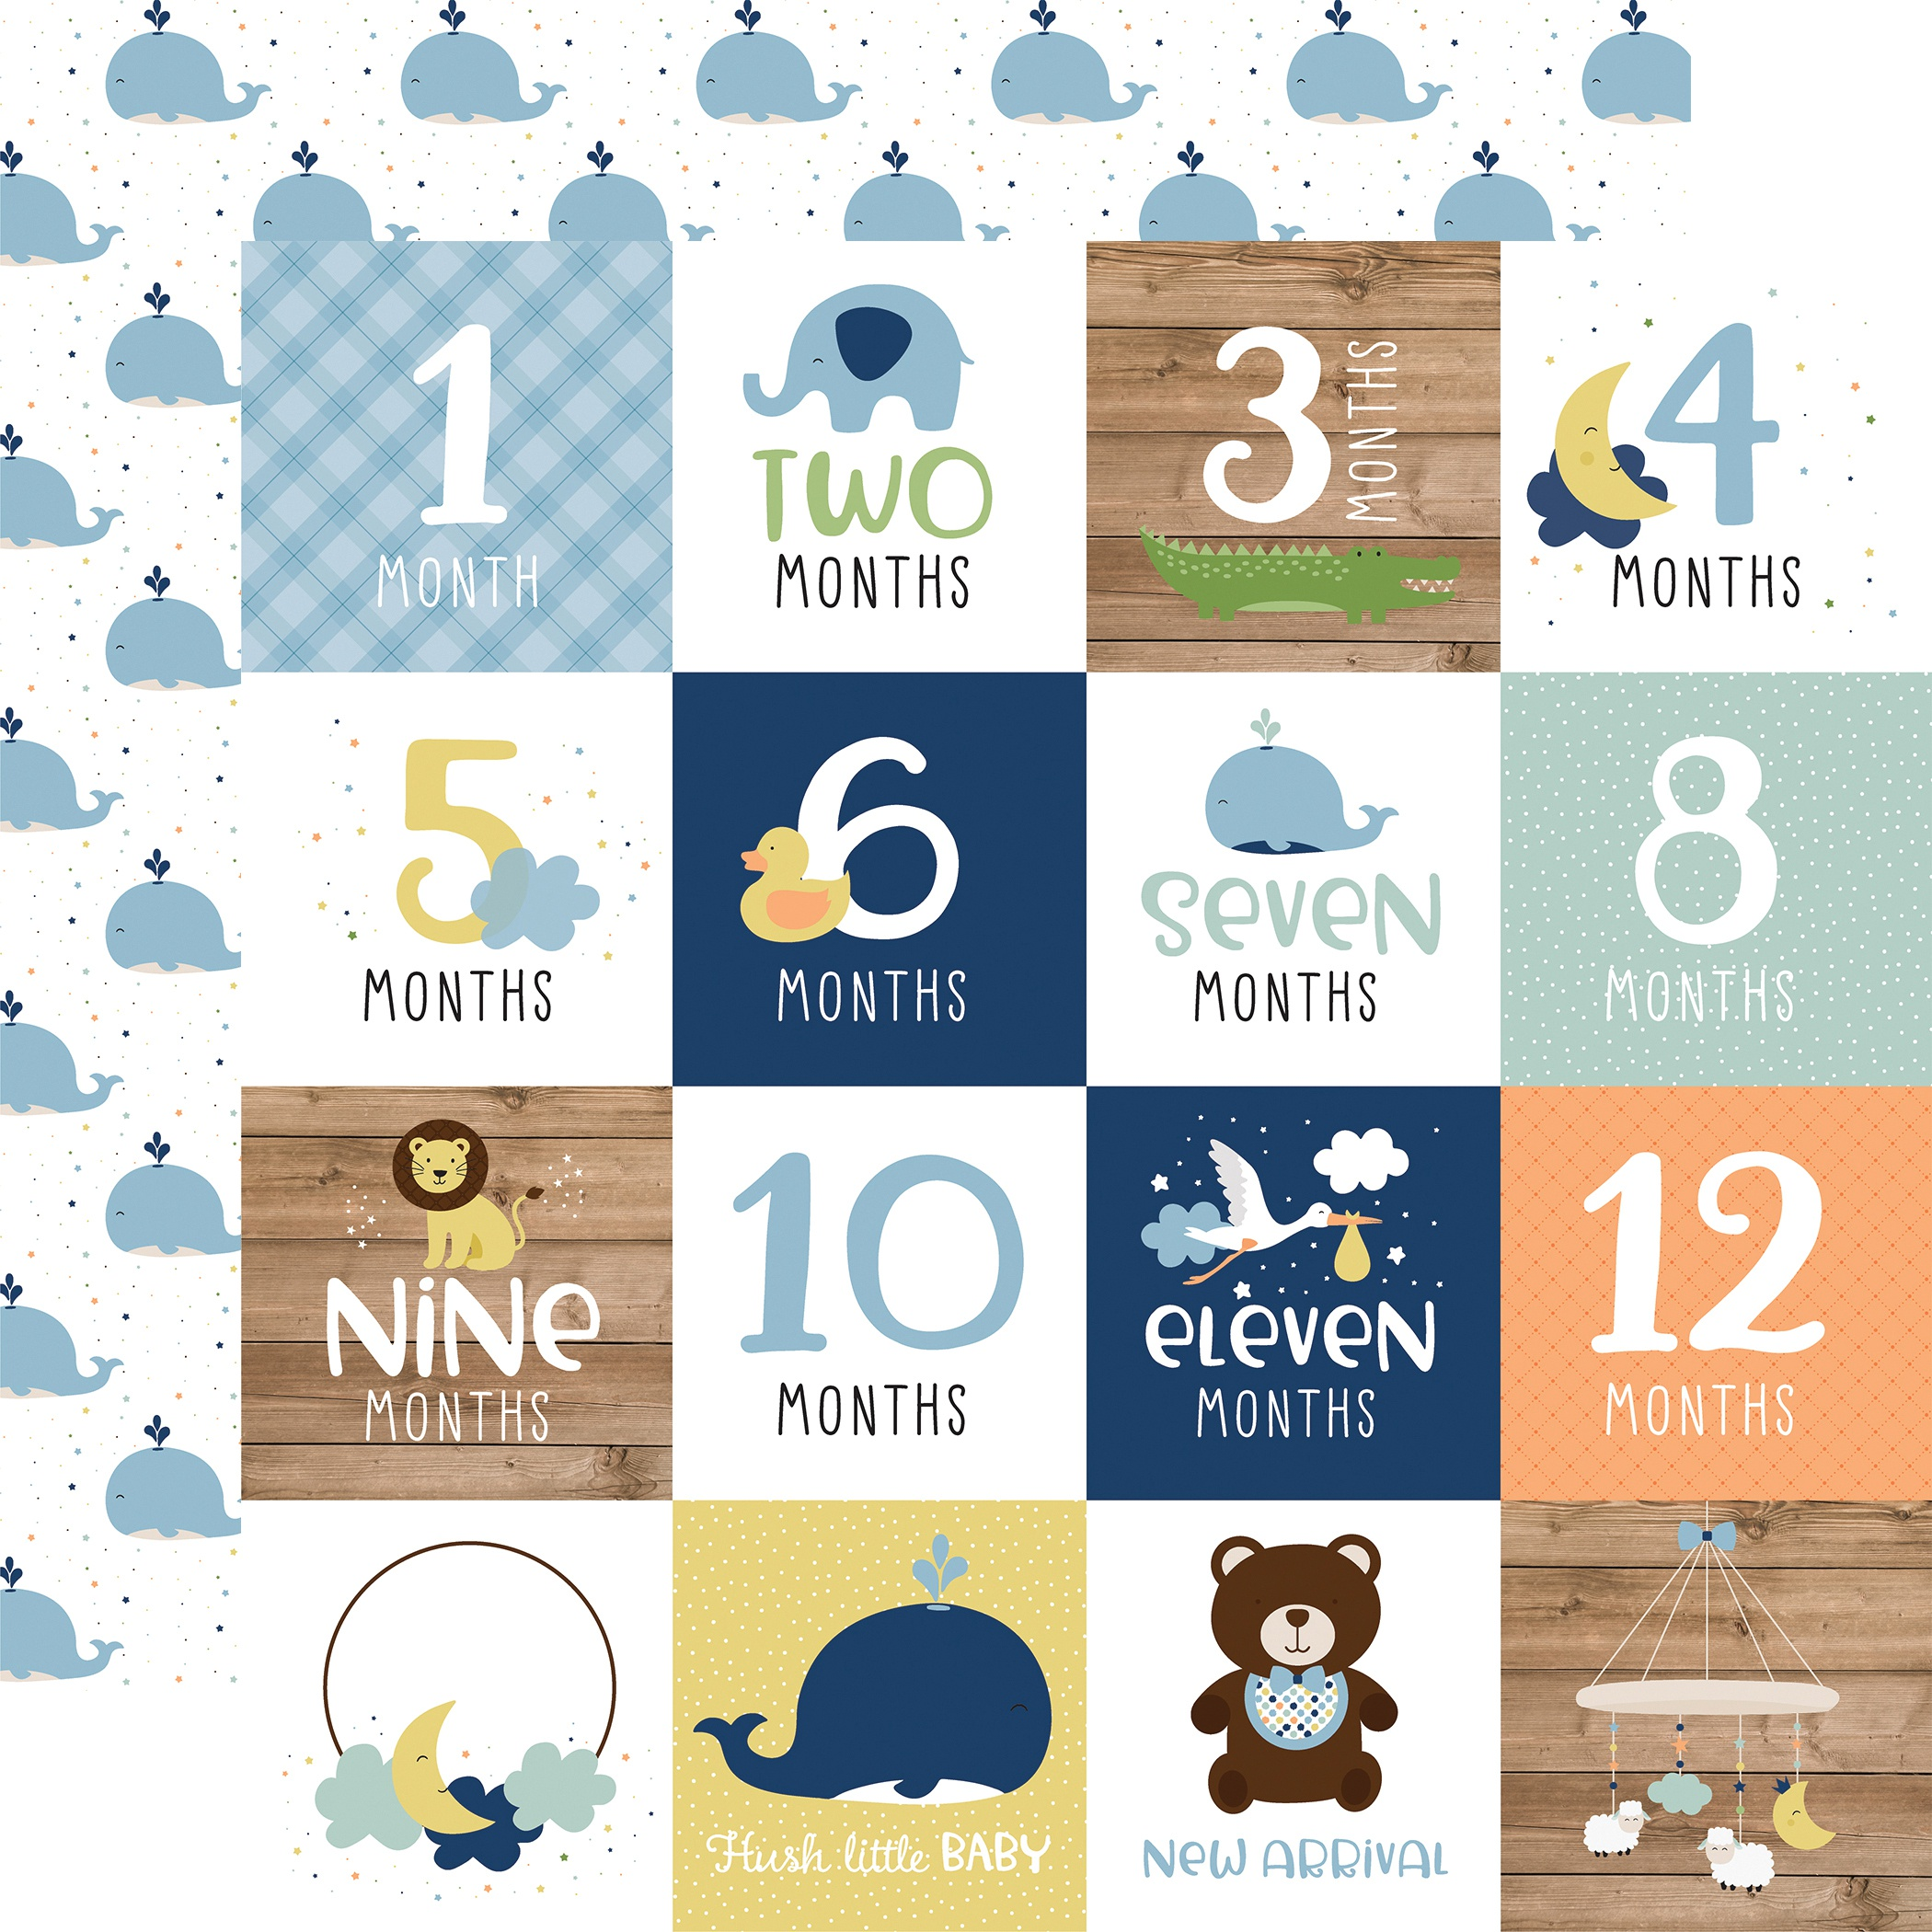 Baby Boy - Milestone Cards